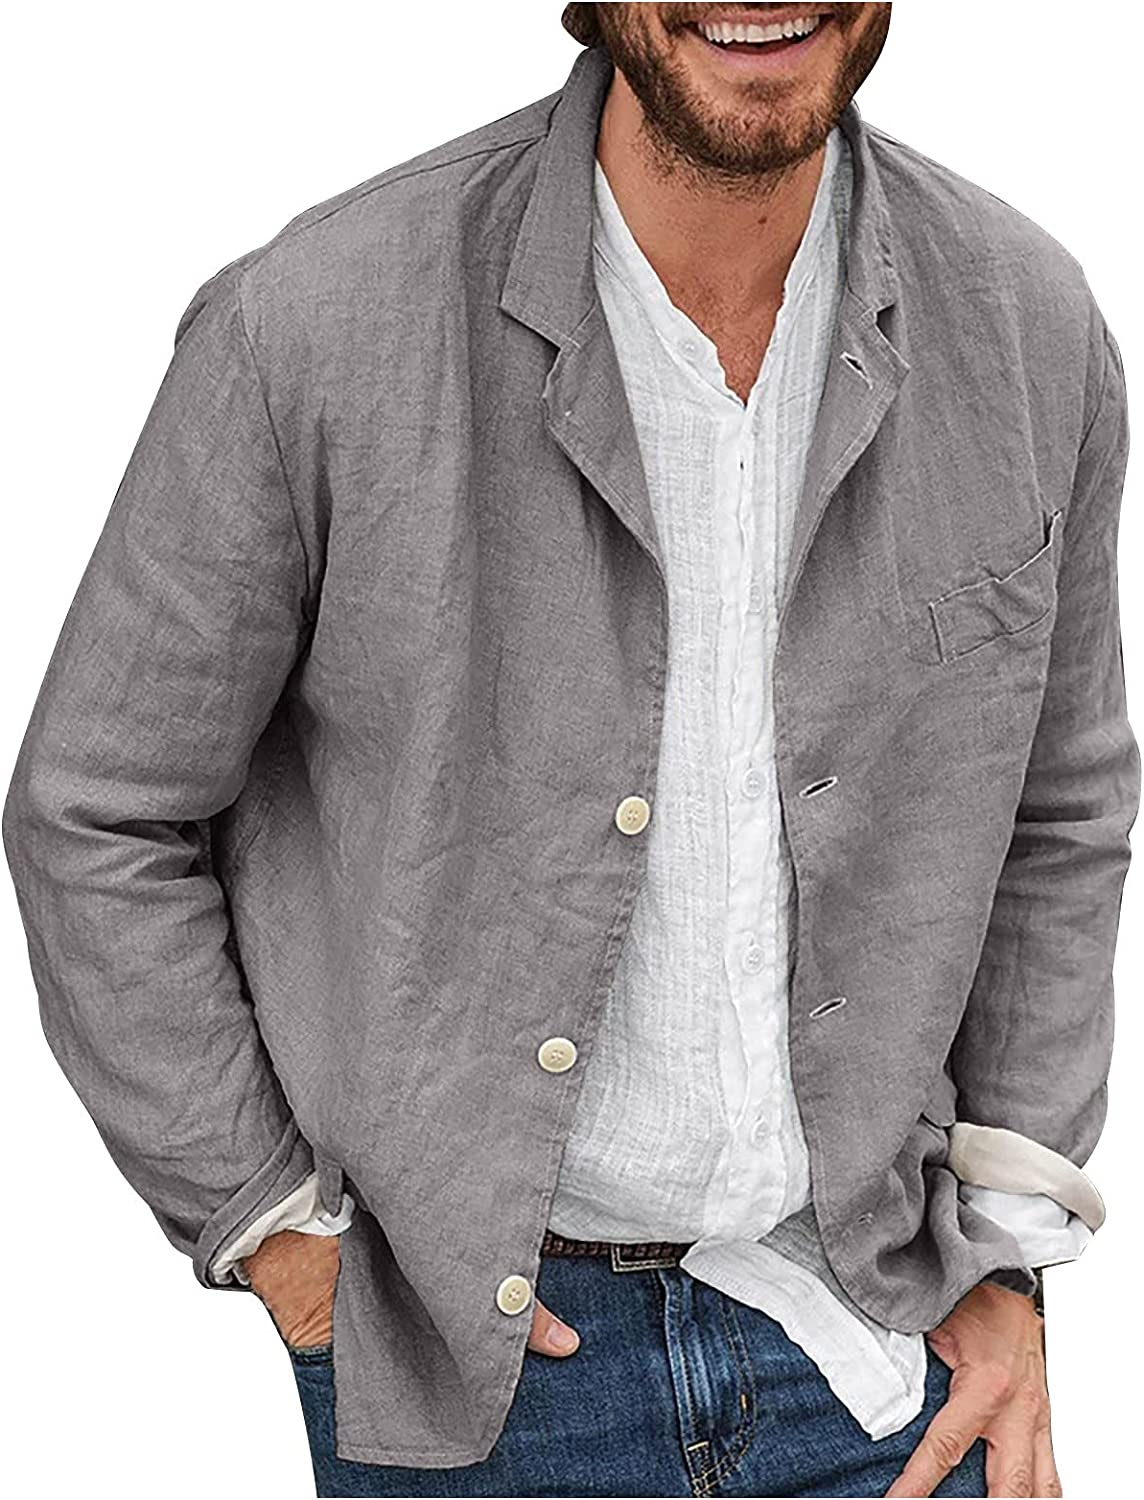 shipfree BUYYA Men's Solid Color Loose Everyday store Comfortable Jacket Casual